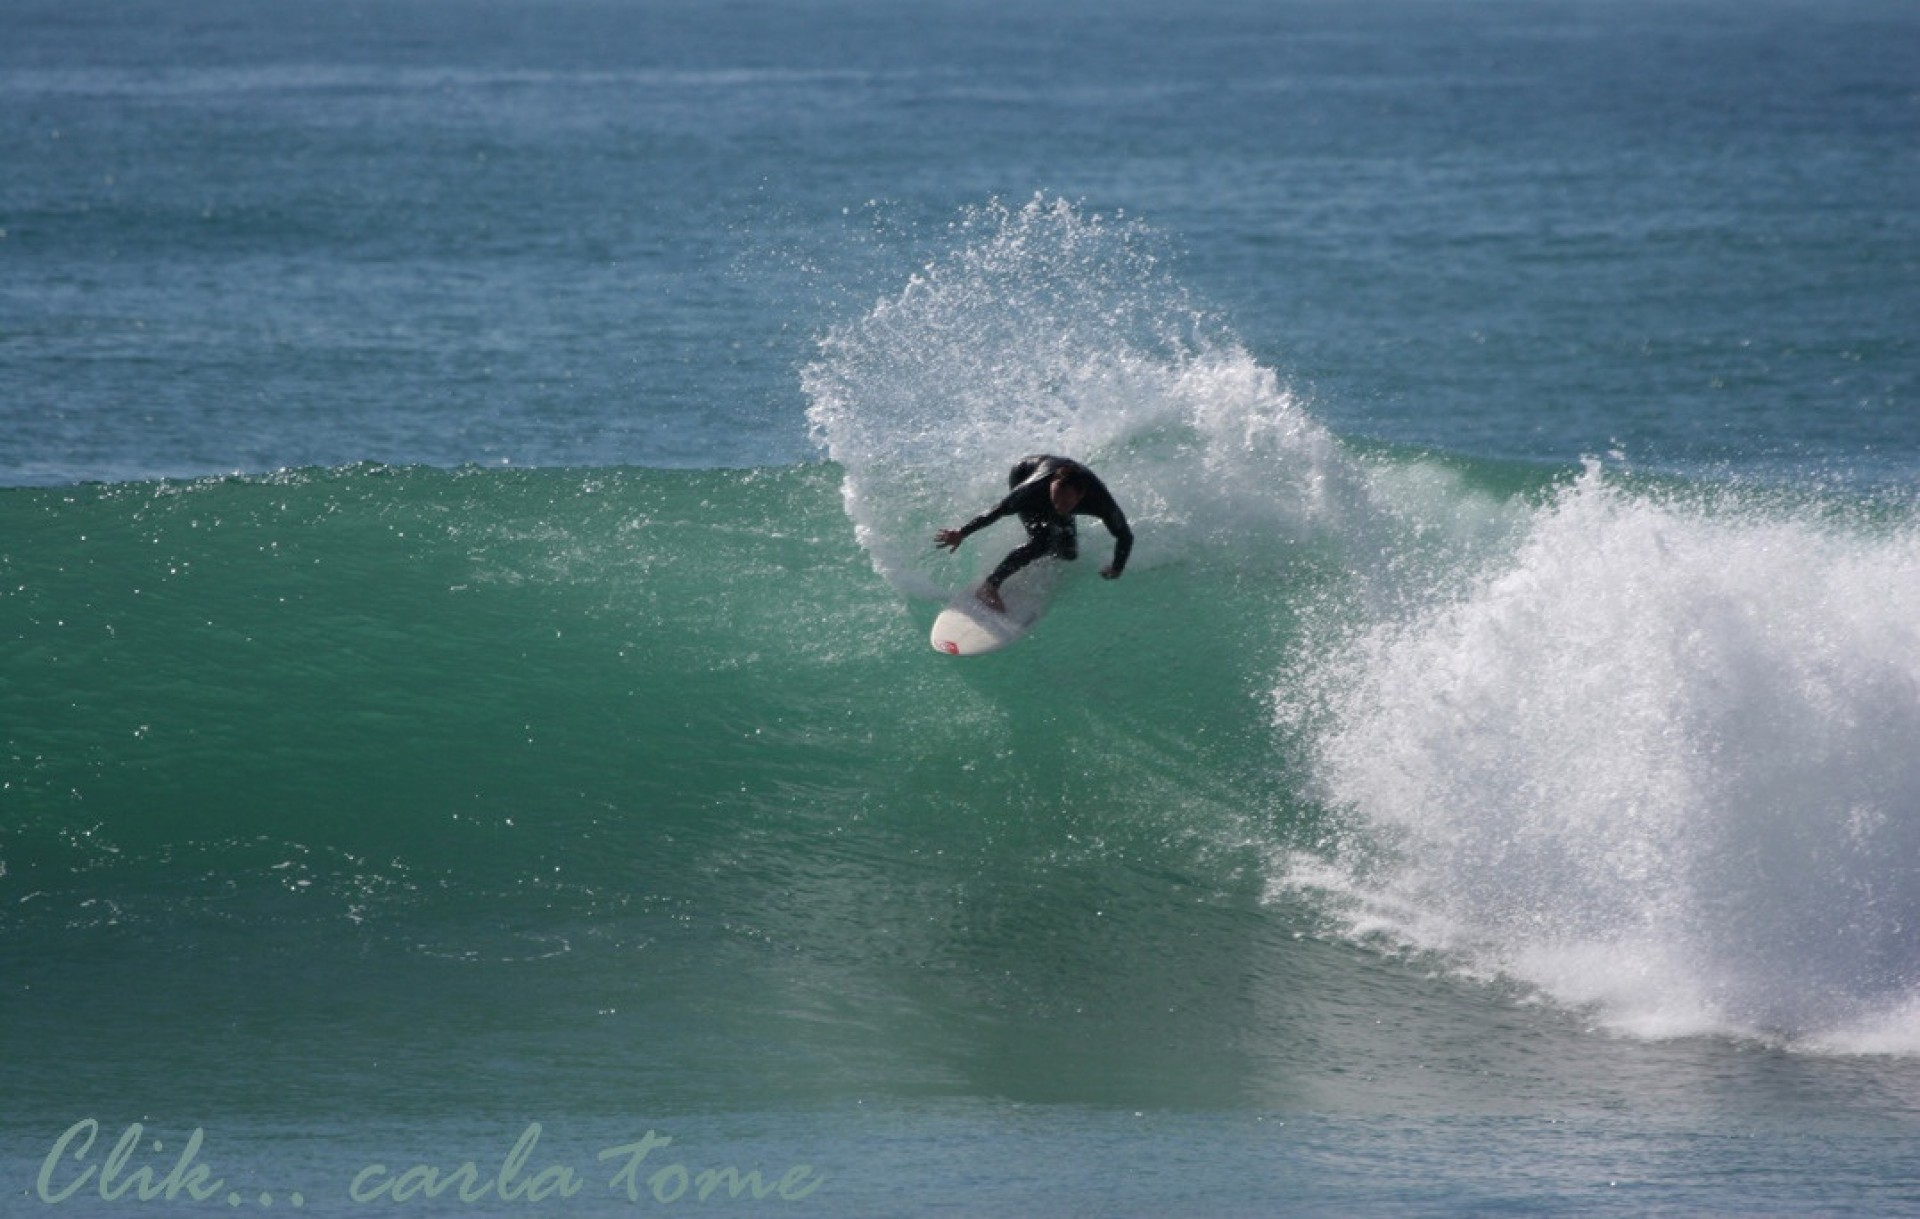 http://www.quick-surf-maroc.com's photo of Anchor Point